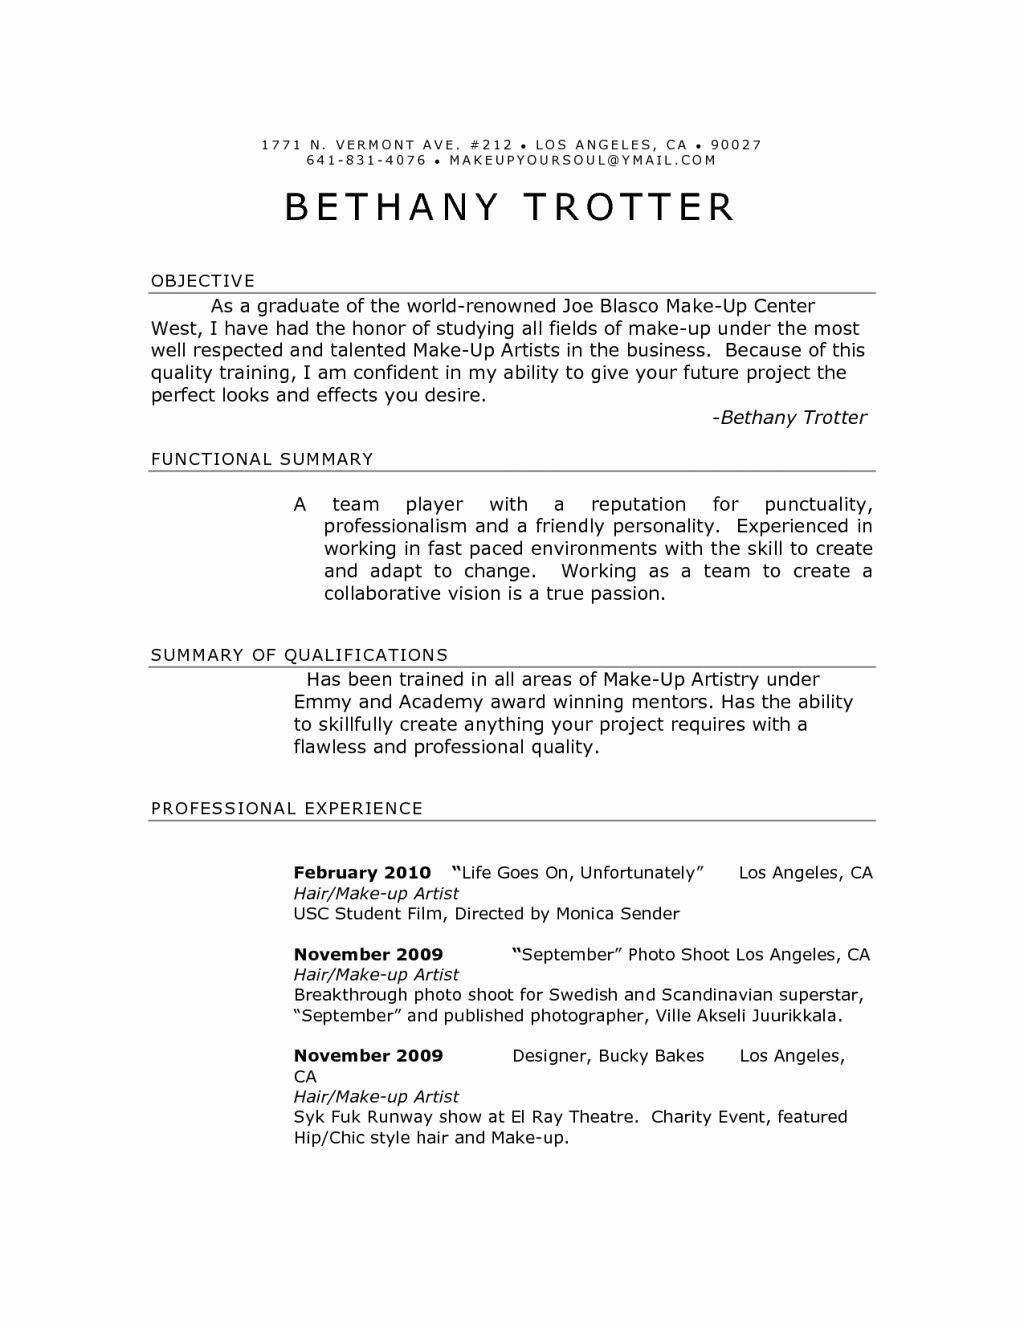 Artist Resume Template Word Best Of Production Artist Resume Sample Template Tag Fabulous